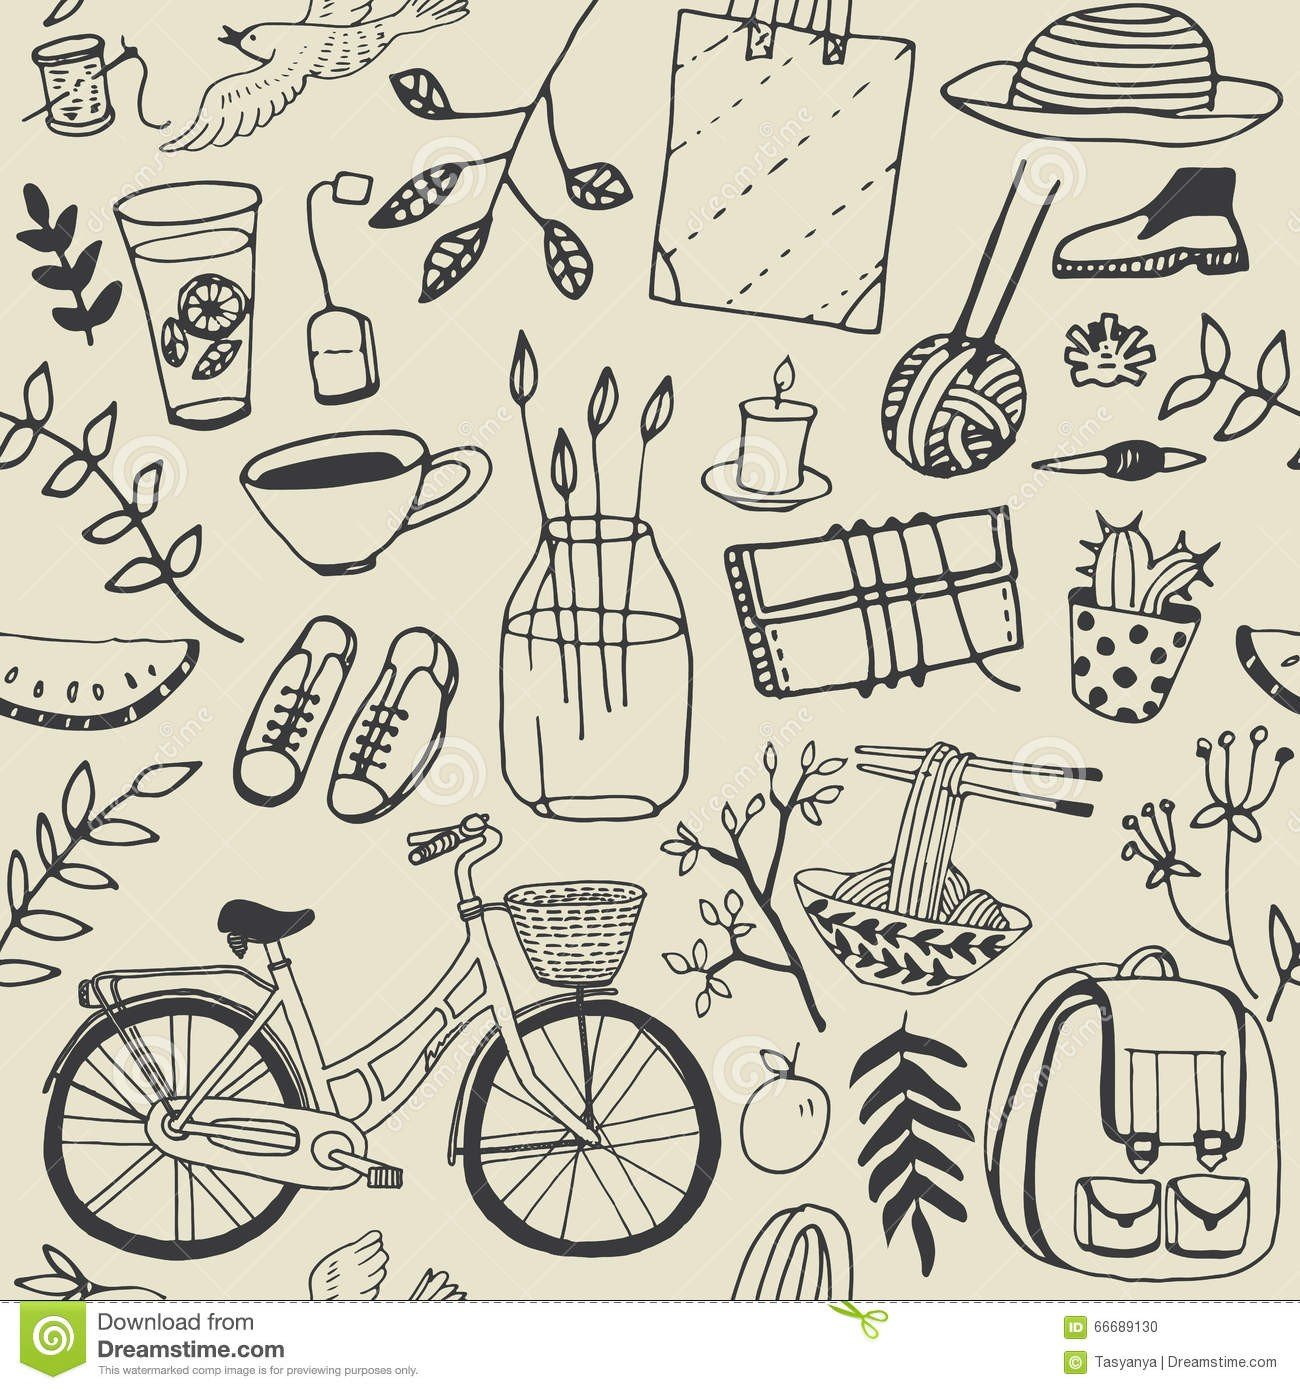 summer-good-mood-doodles-set-hand-draw-flowers-bicycle-backpack-food-illustration-cute-background-66689130